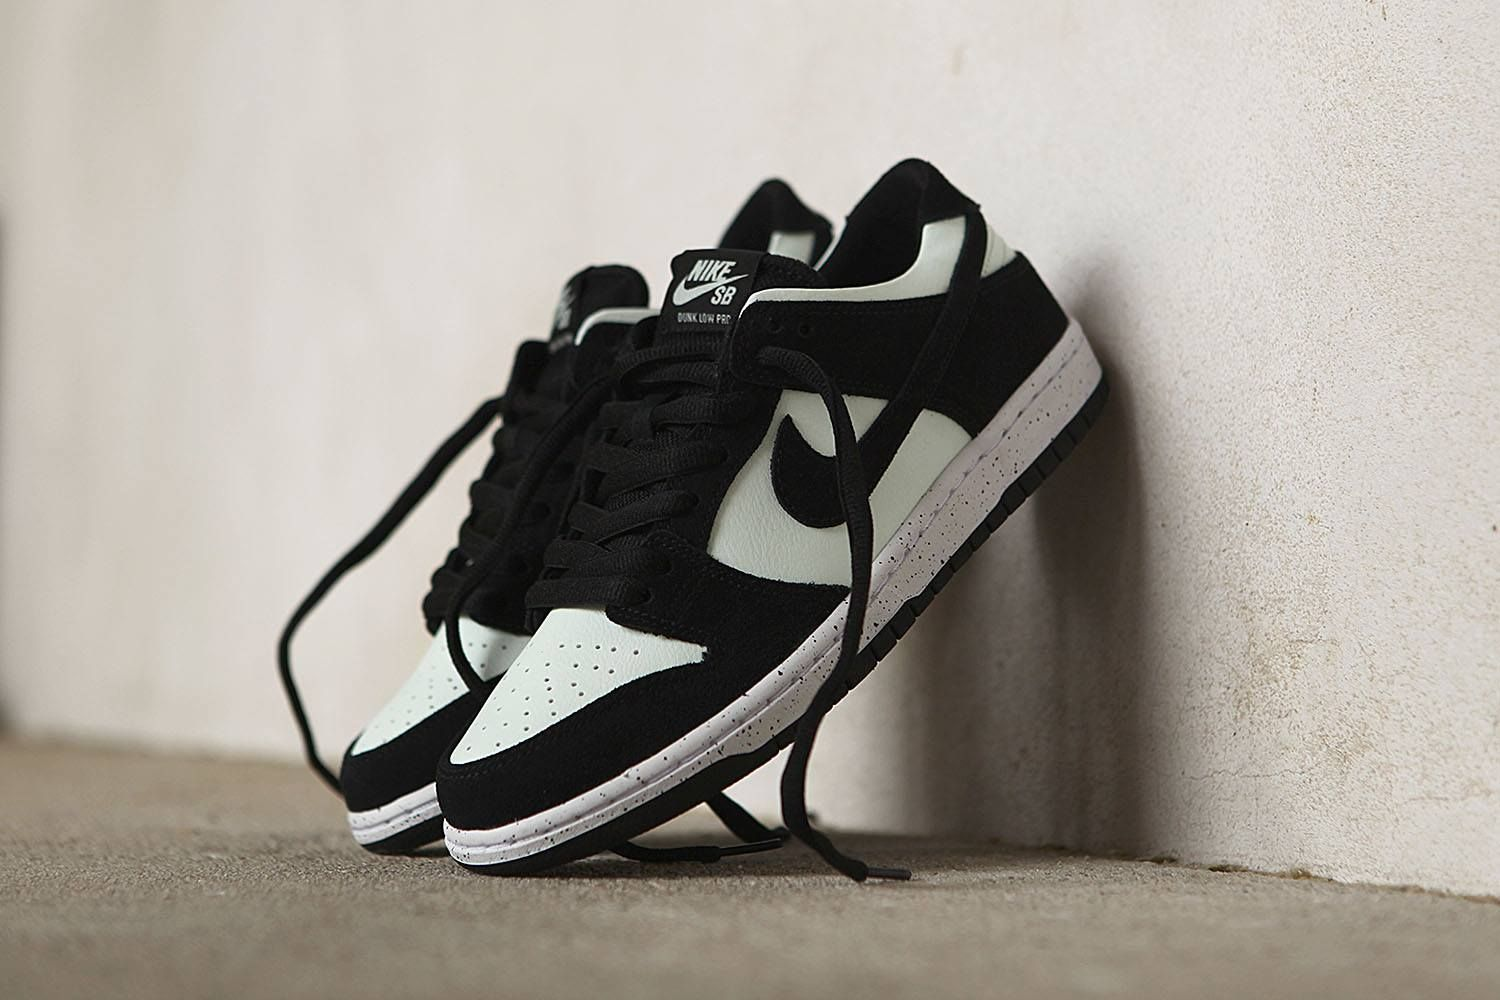 Nike SB Dunk Low Pro Black Barely Green White https://www.popname